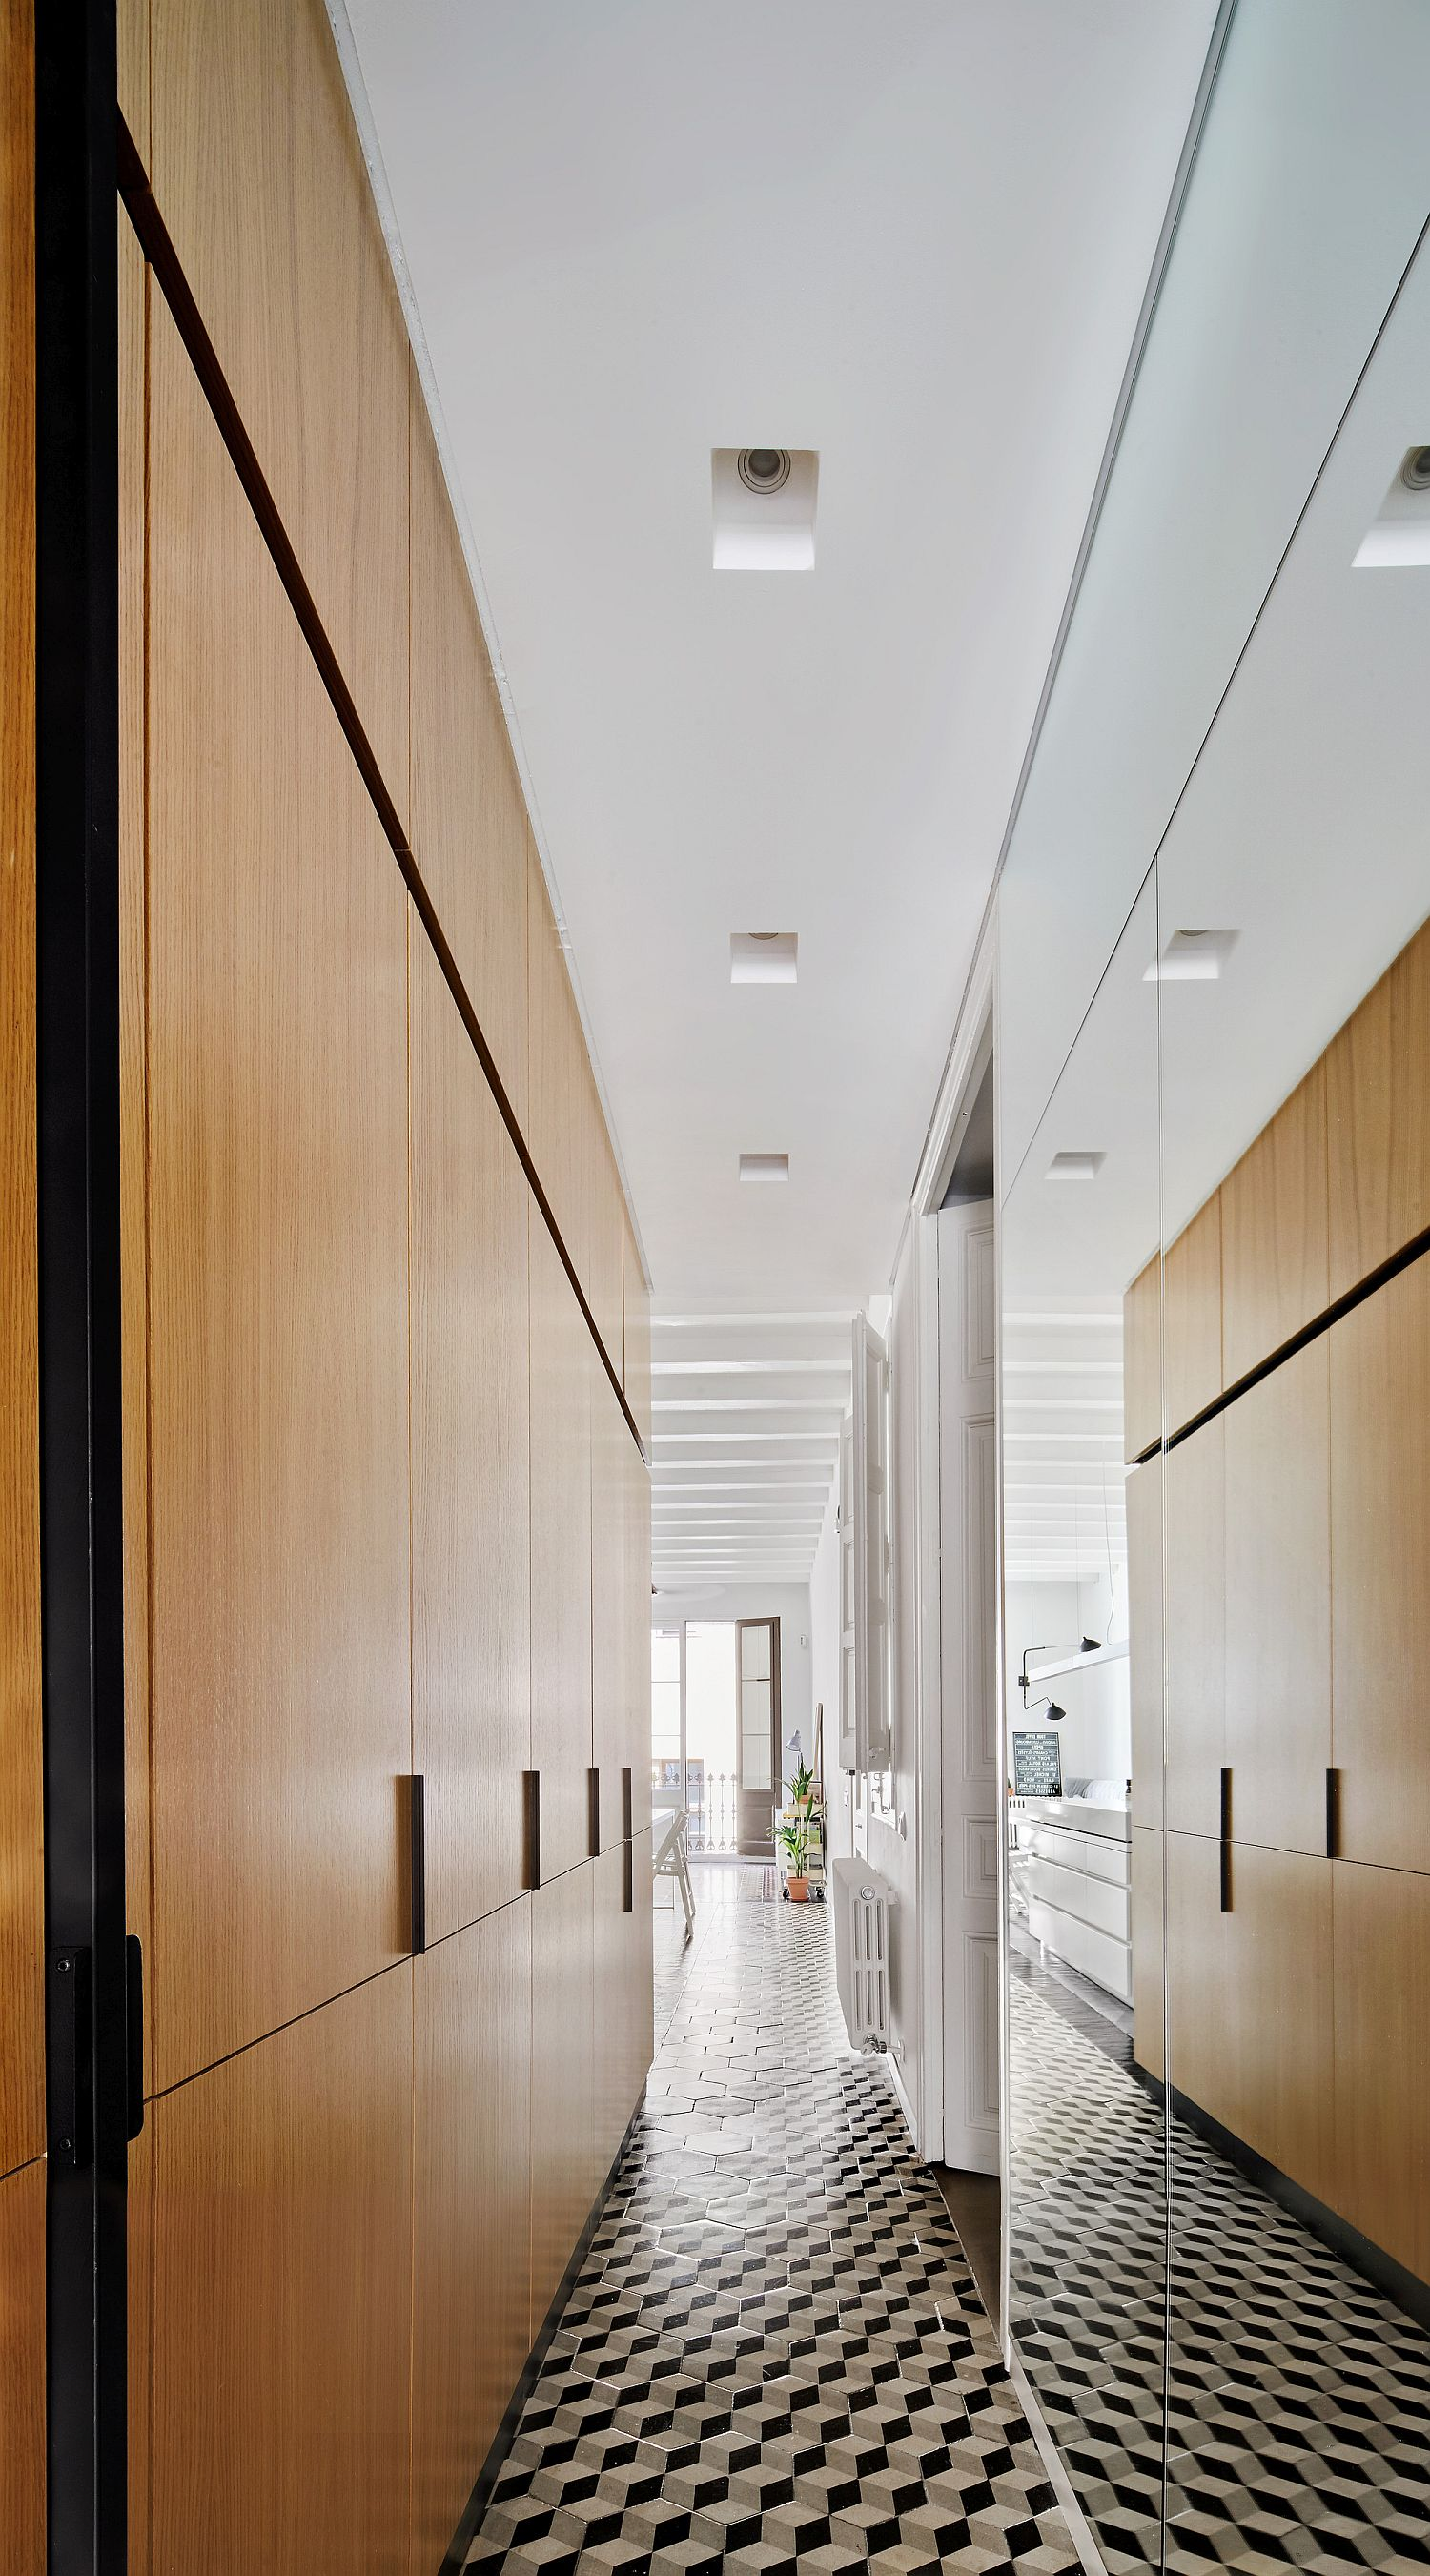 Corridors with tiles and storage options inside the apartment